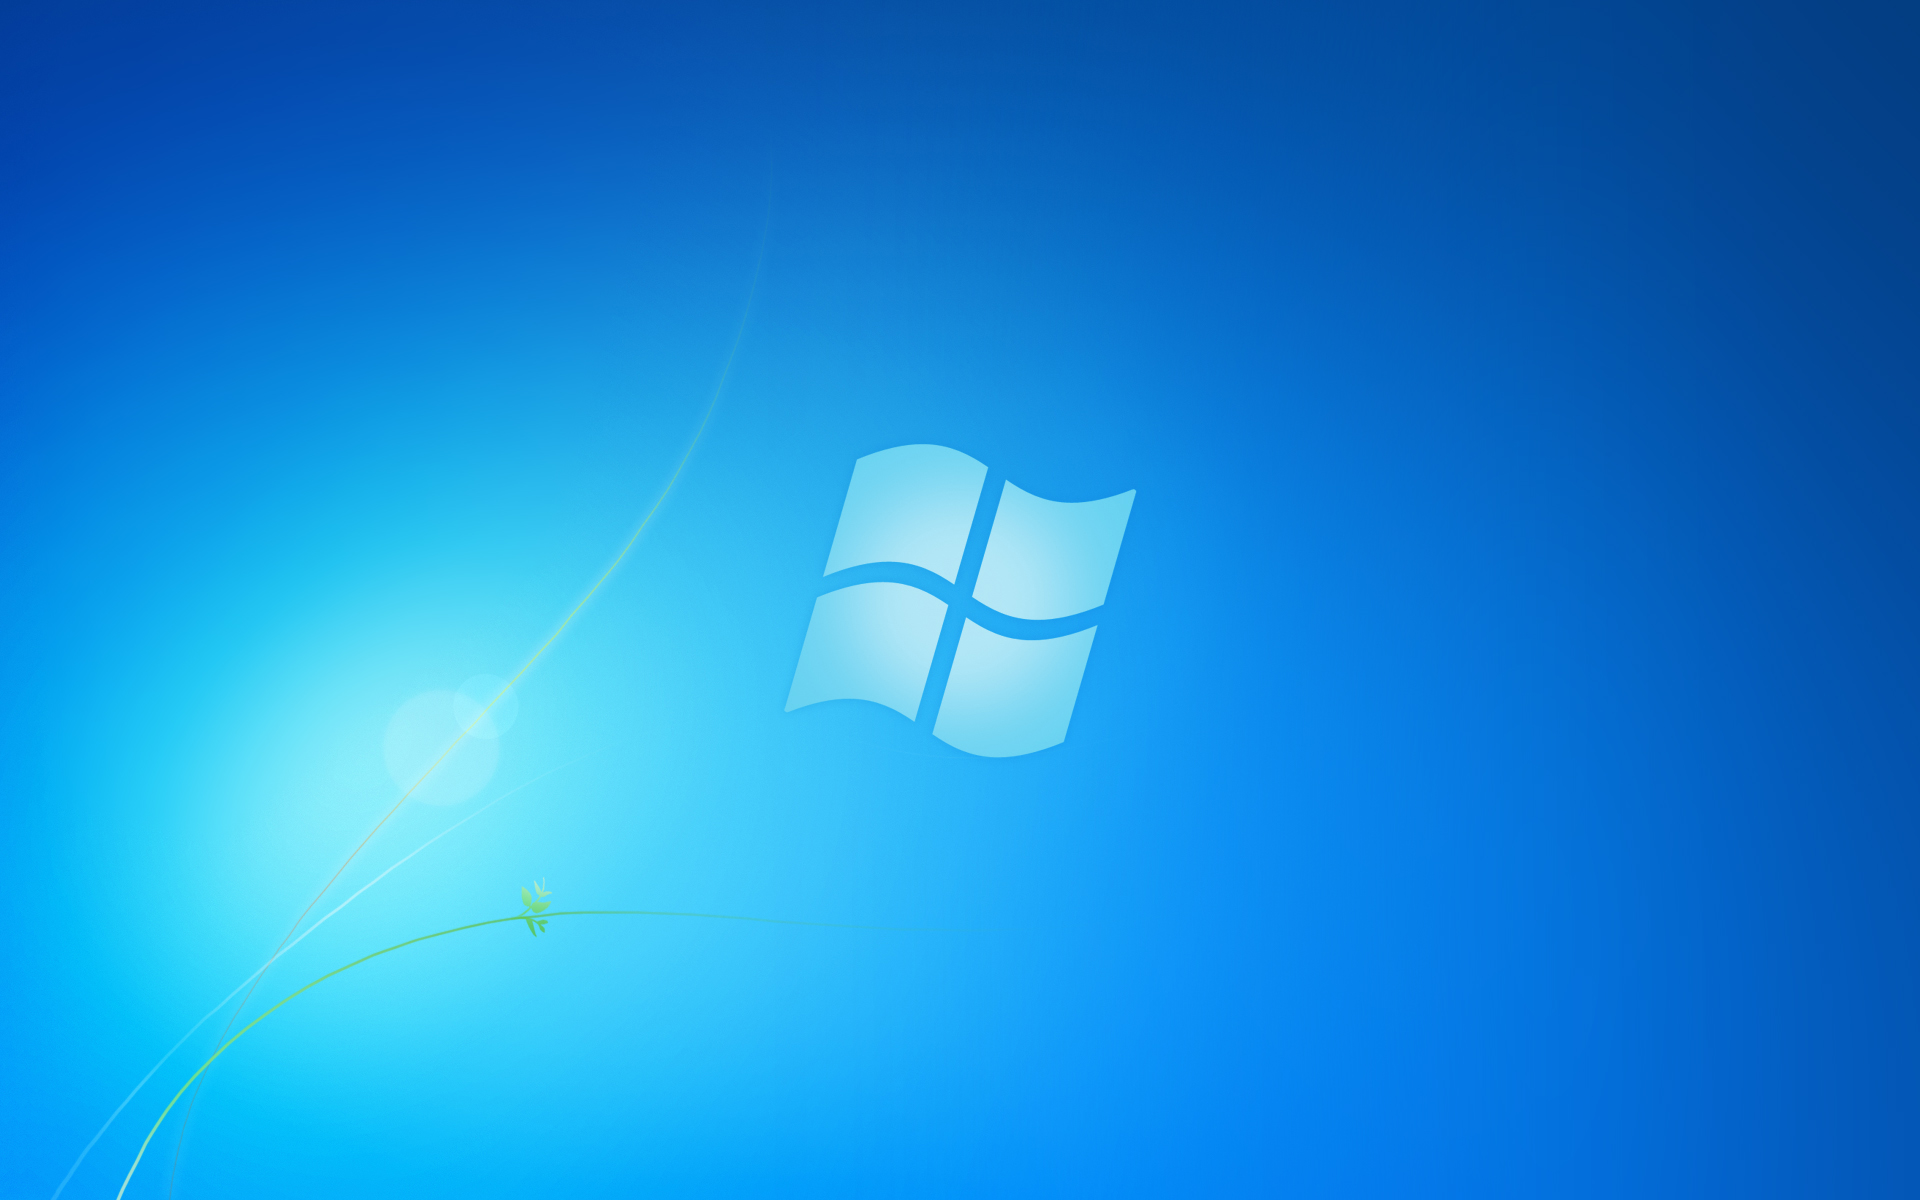 Wallpaper from Windows 7 Starter Redmond Pie 1920x1200